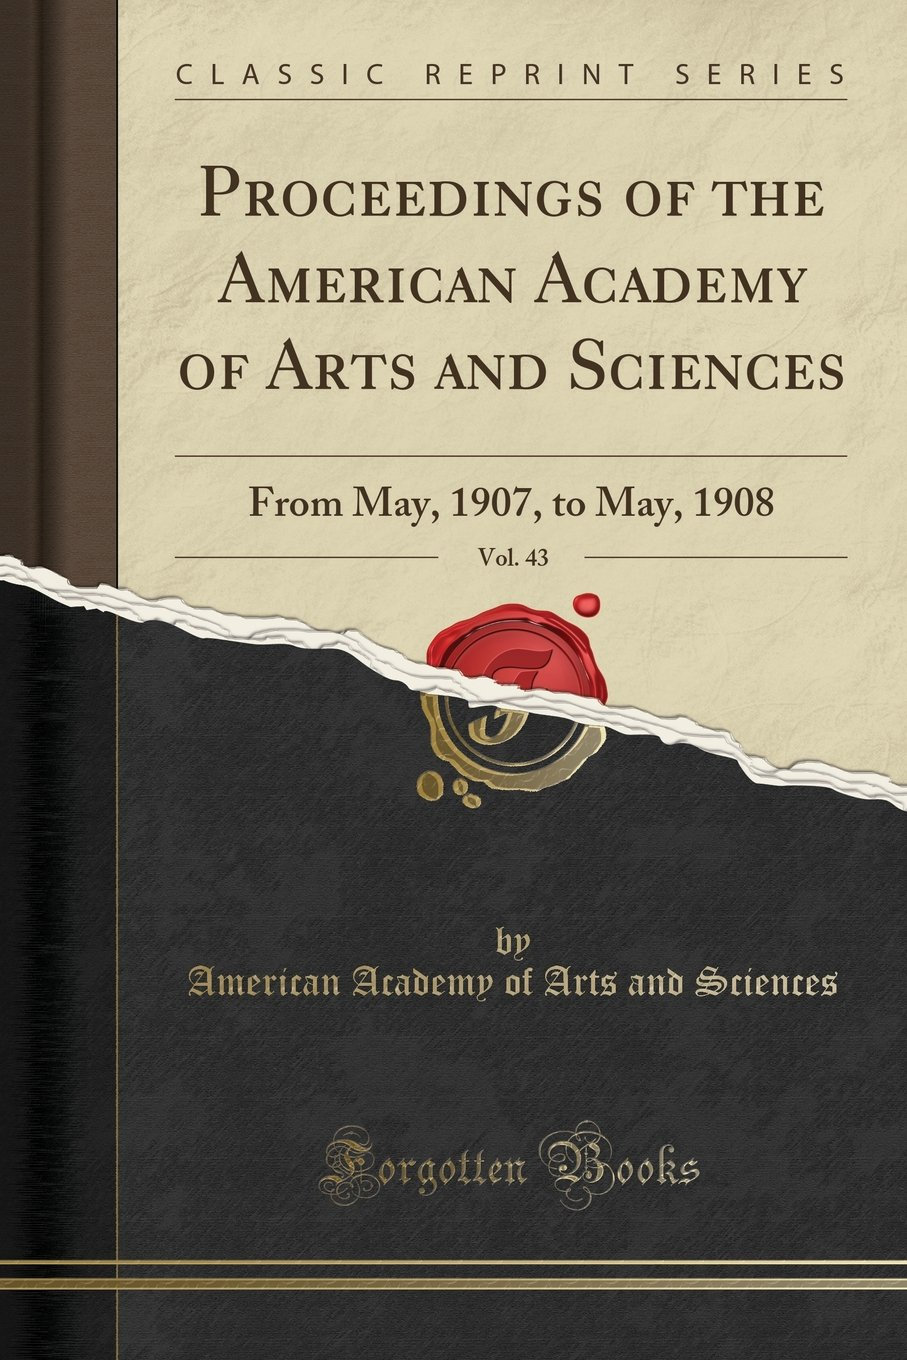 Download Proceedings of the American Academy of Arts and Sciences, Vol. 43: From May, 1907, to May, 1908 (Classic Reprint) ebook